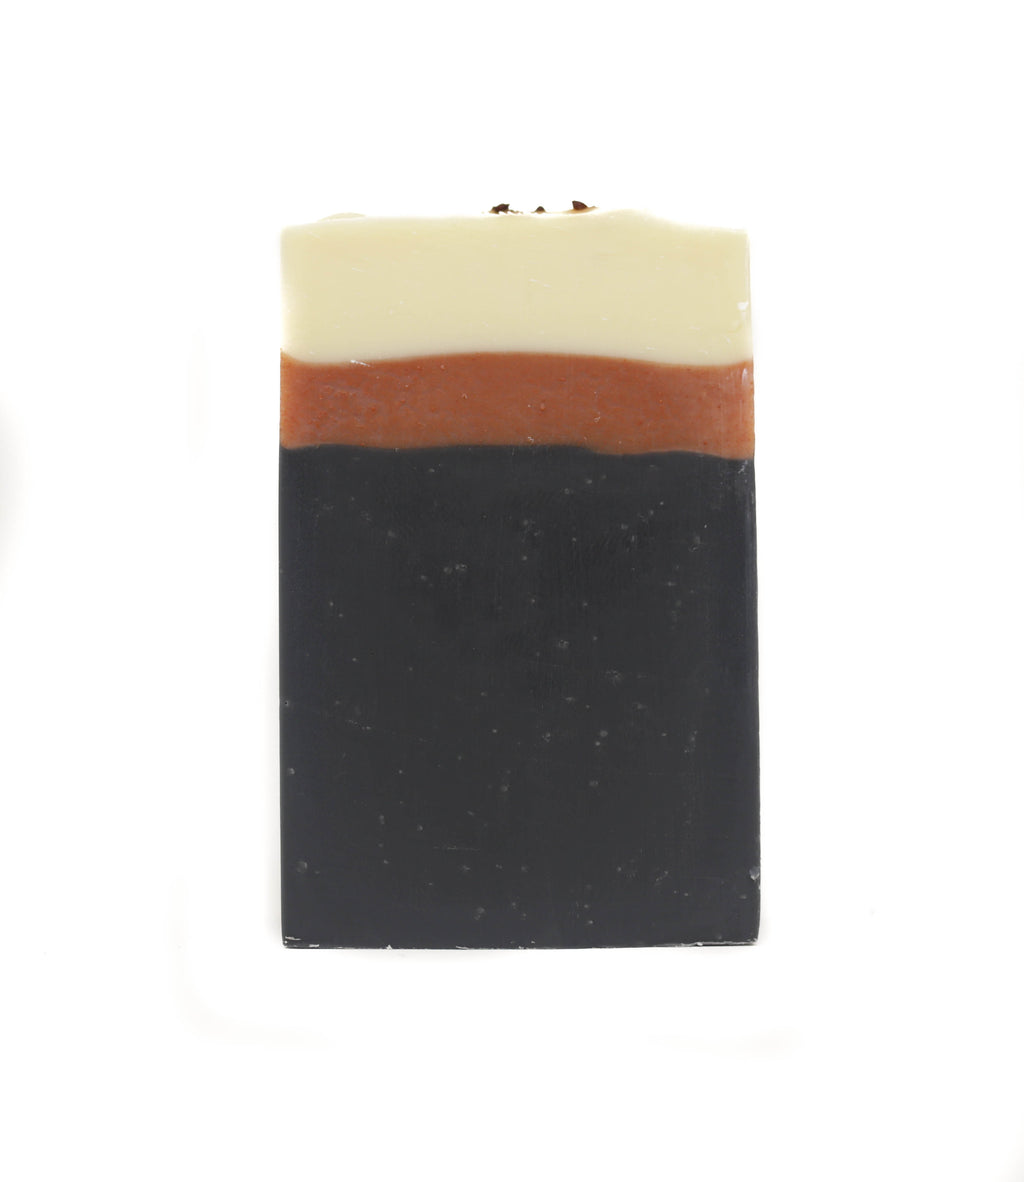 The Good Life Artisan Soap